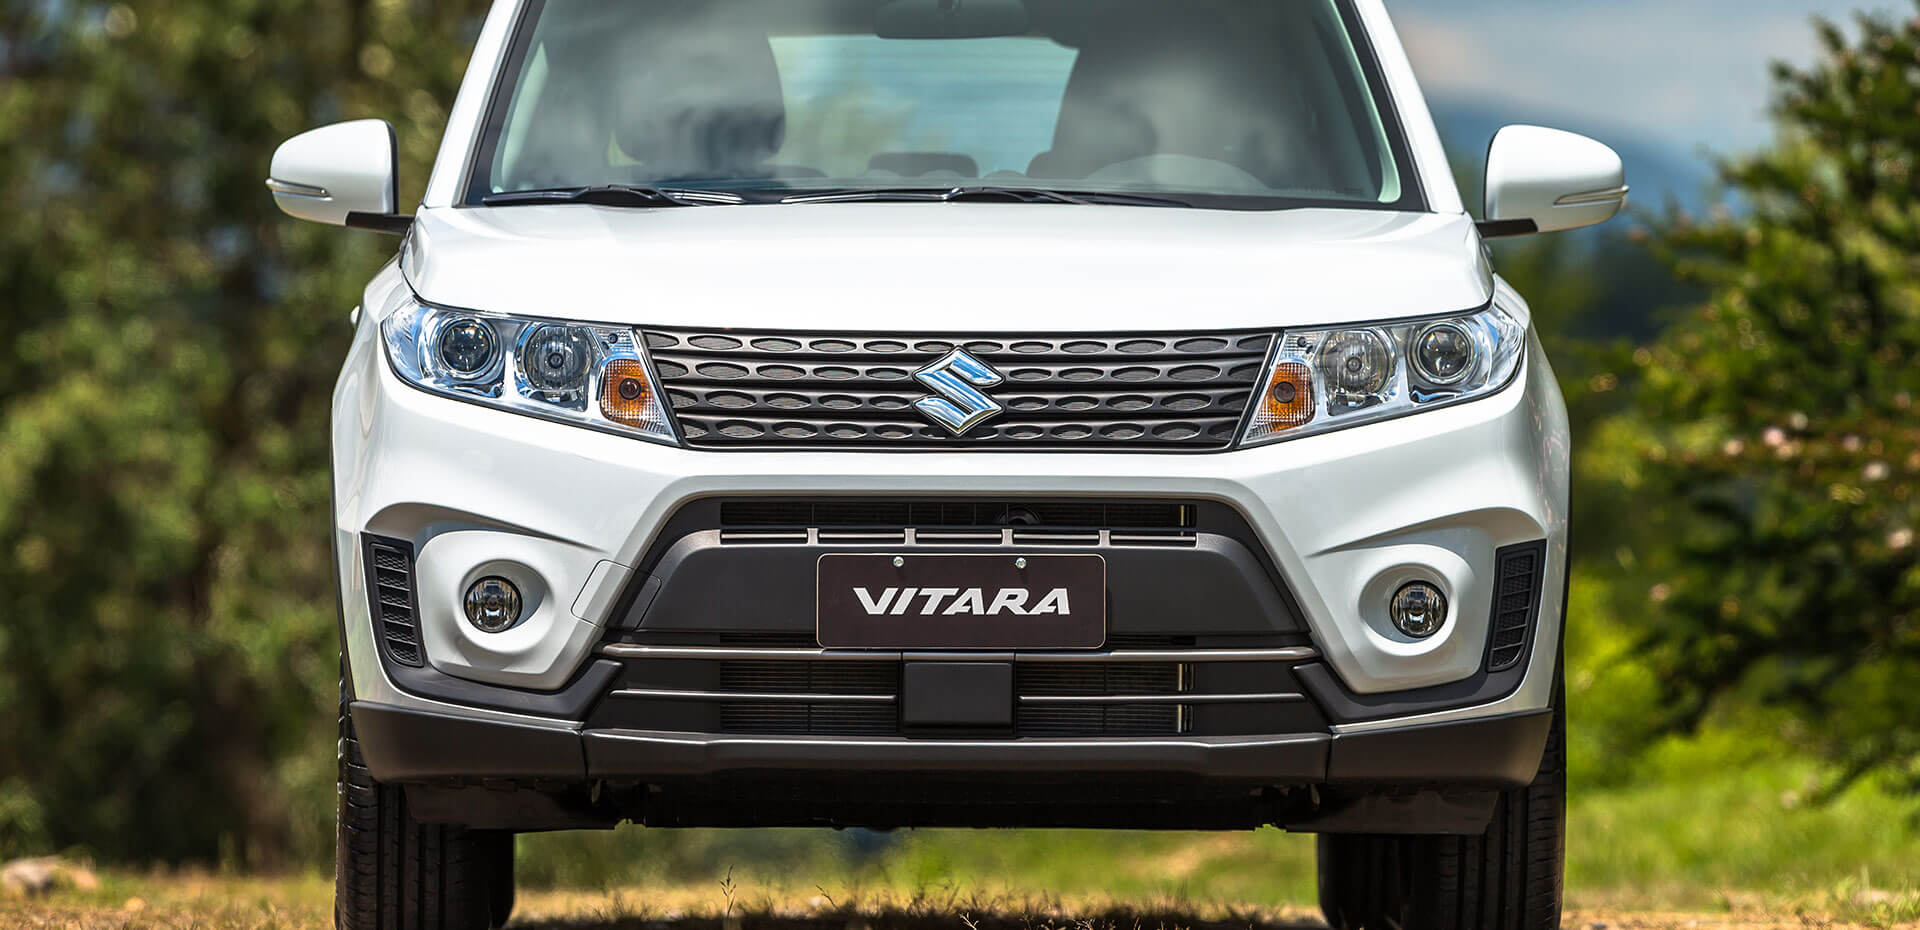 Suzuki Vitara 4ALL 7